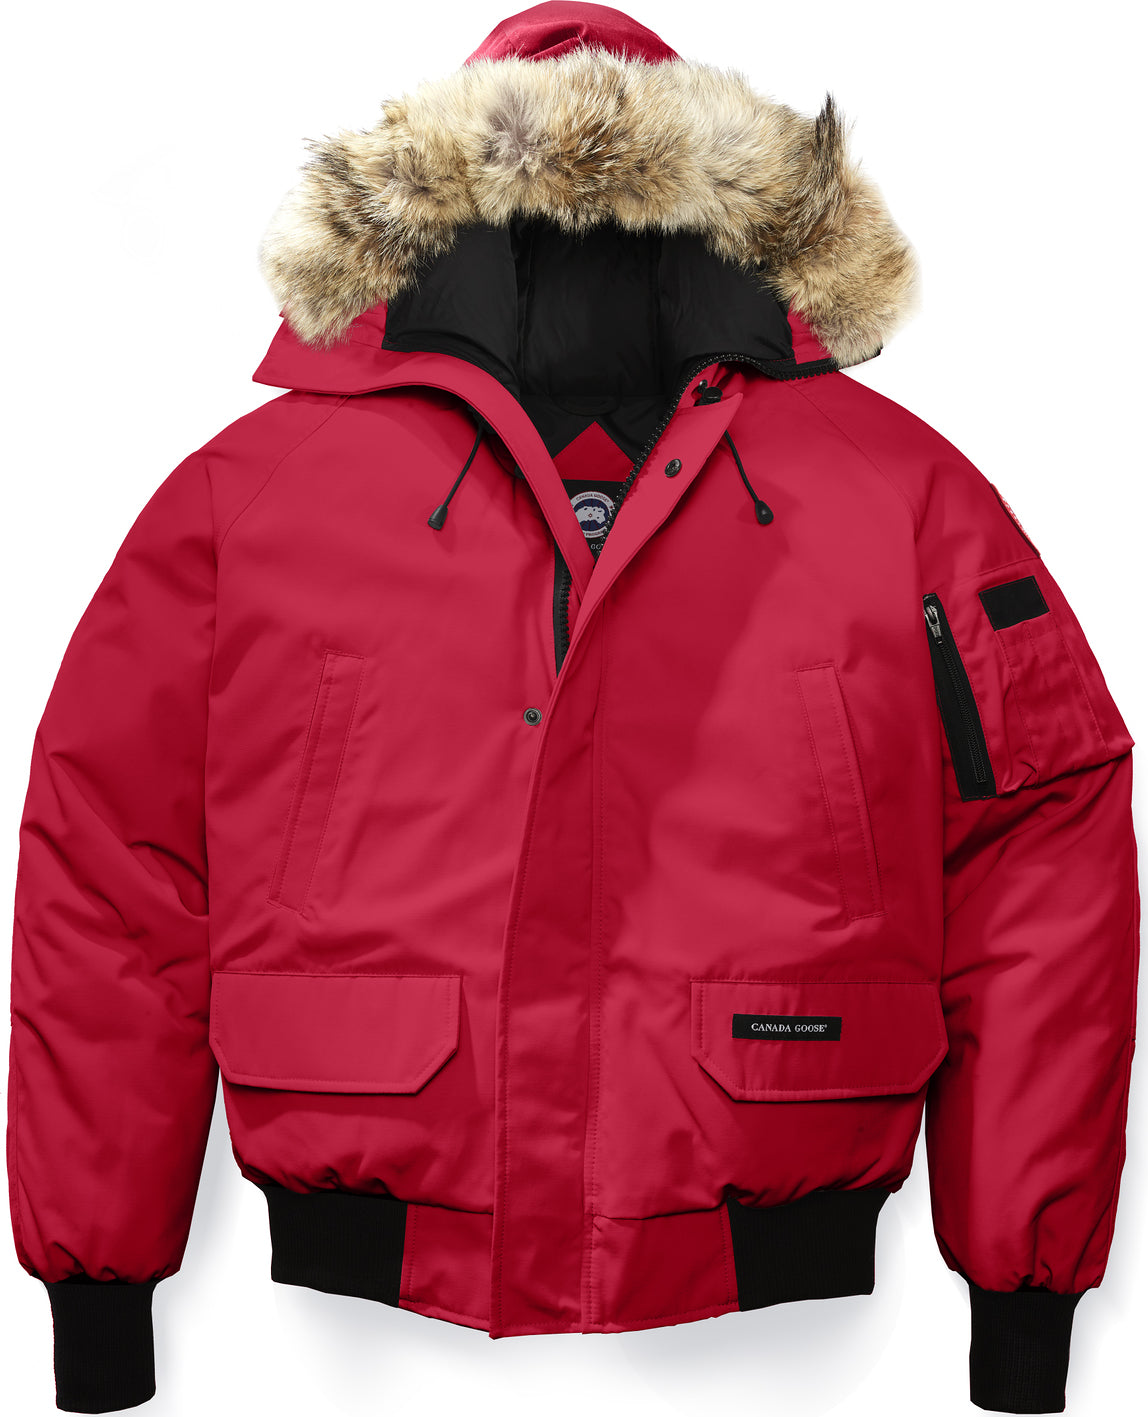 477df729a63a Canada Goose Men s Chilliwack Bomber - Fusion Fit